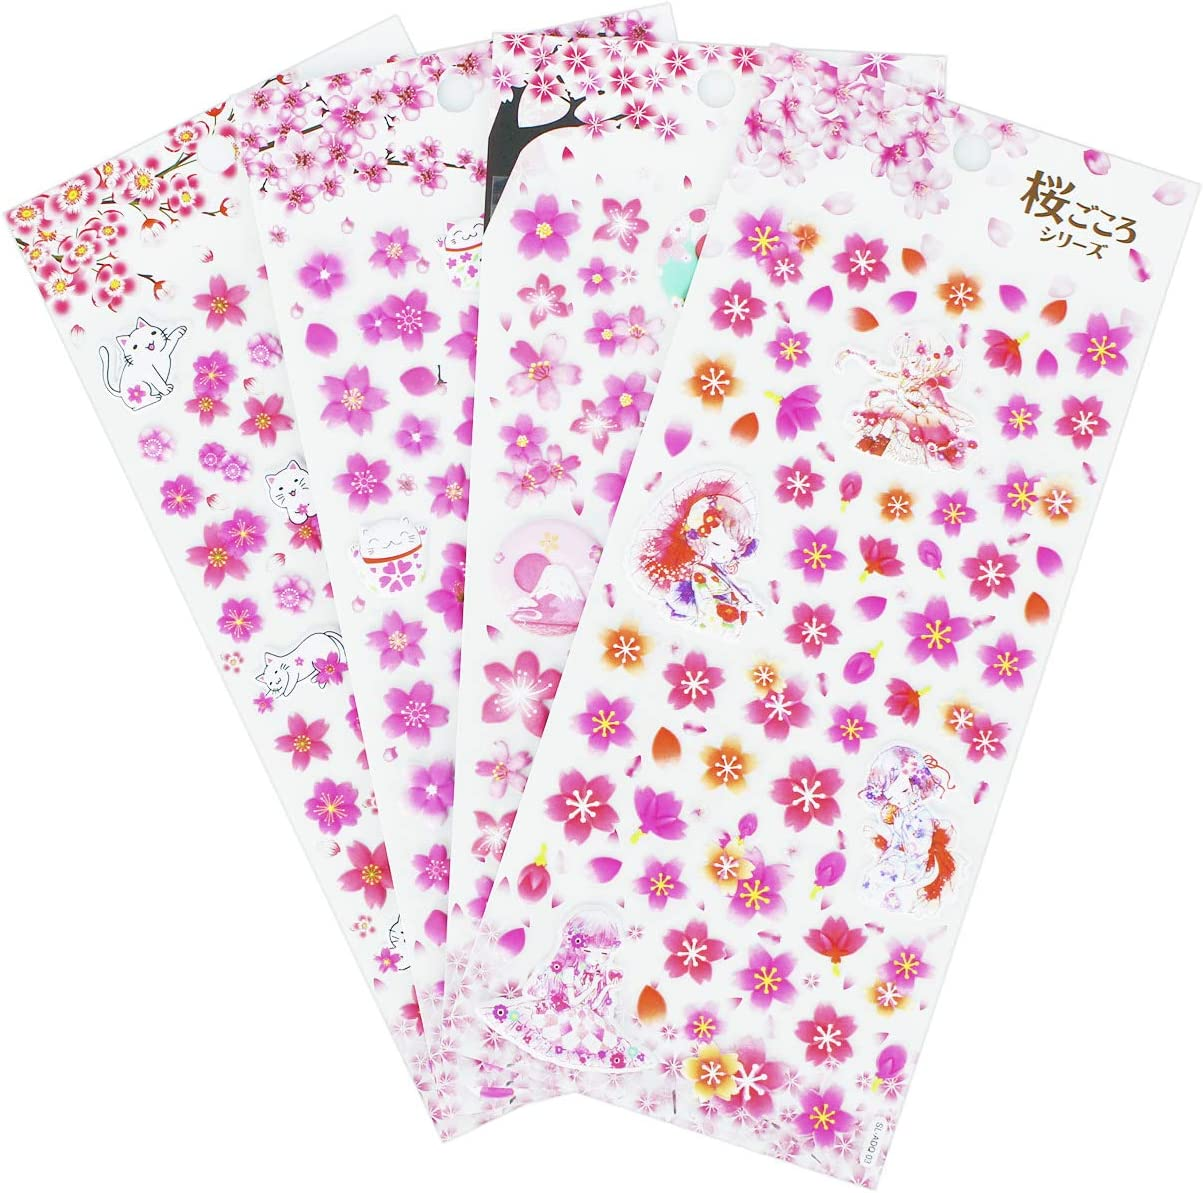 Foam Sakura Stickers 4 Sheets with Mount Fuji Cats Geisha and Kinds of Japanese Cherry Blossoms Stickers Decals Pink - 240 Pieces